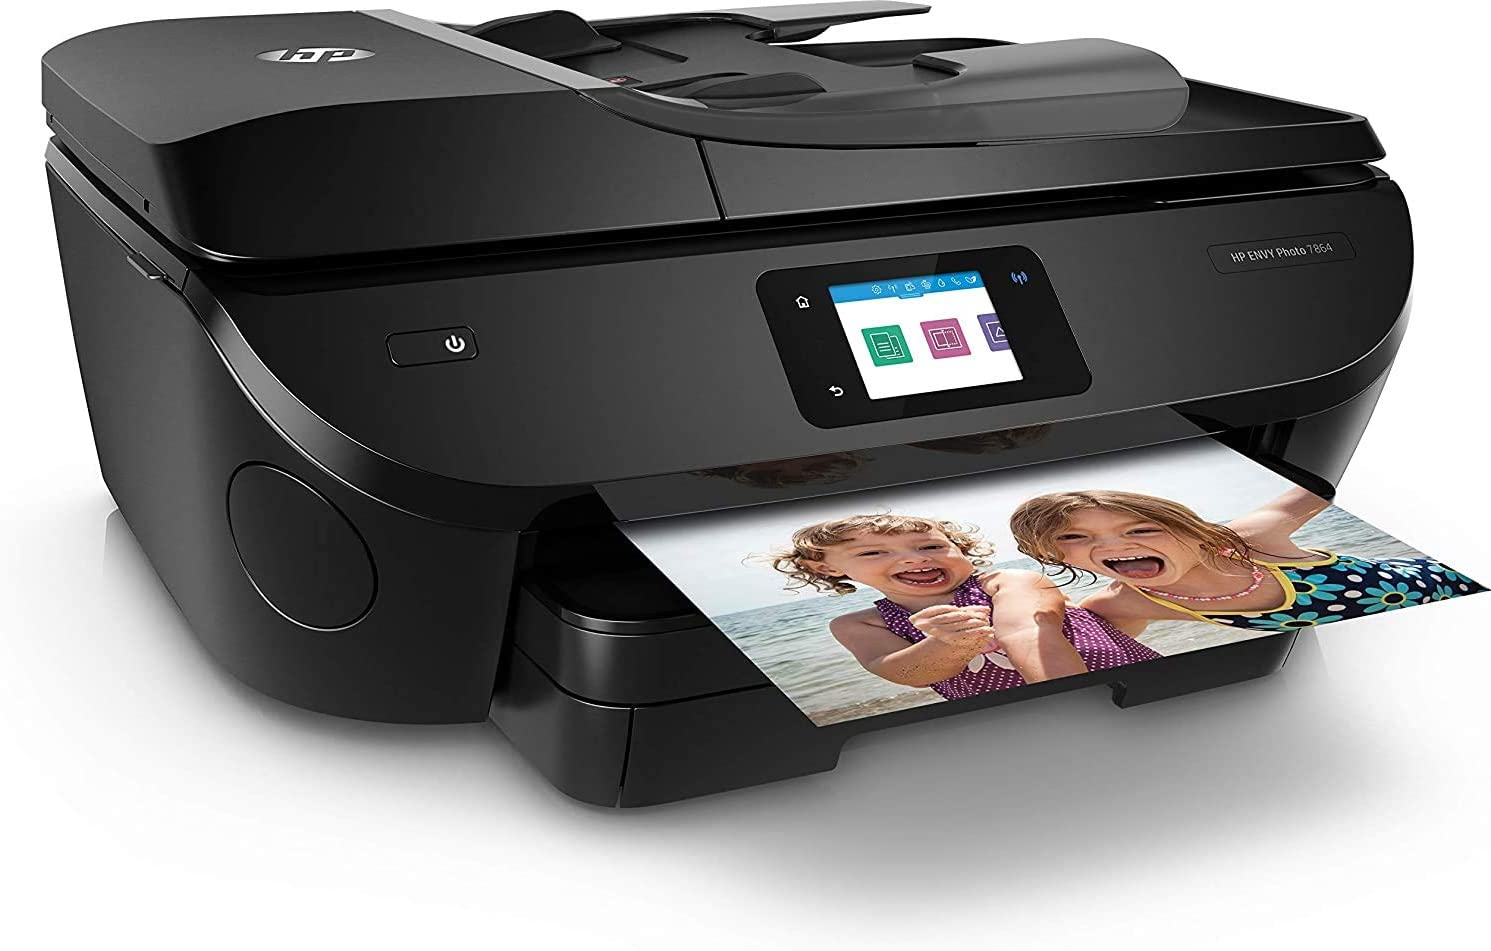 HP Envy Photo 7864 All-in-One Inkjet Printer, Scan, Copy and Fax with Mobile Printing Capability, K7S01A (Renewed)